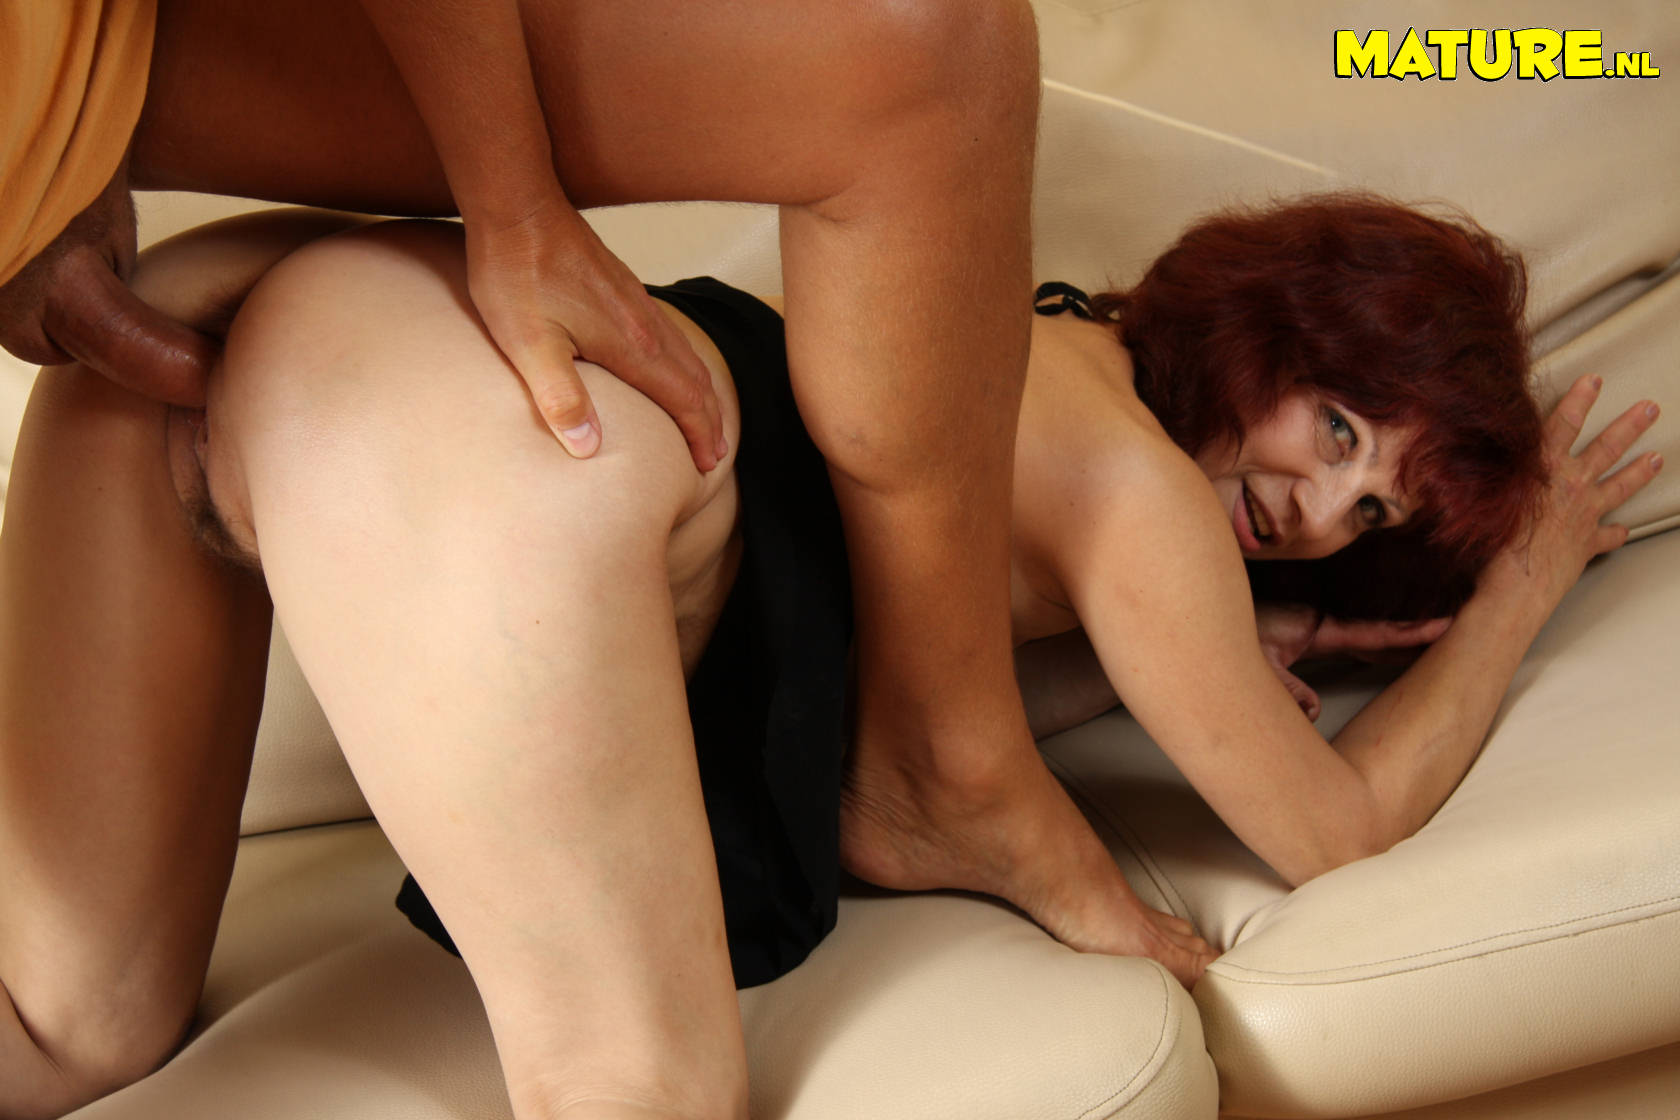 Old redhead sucking dick and gettin fucked